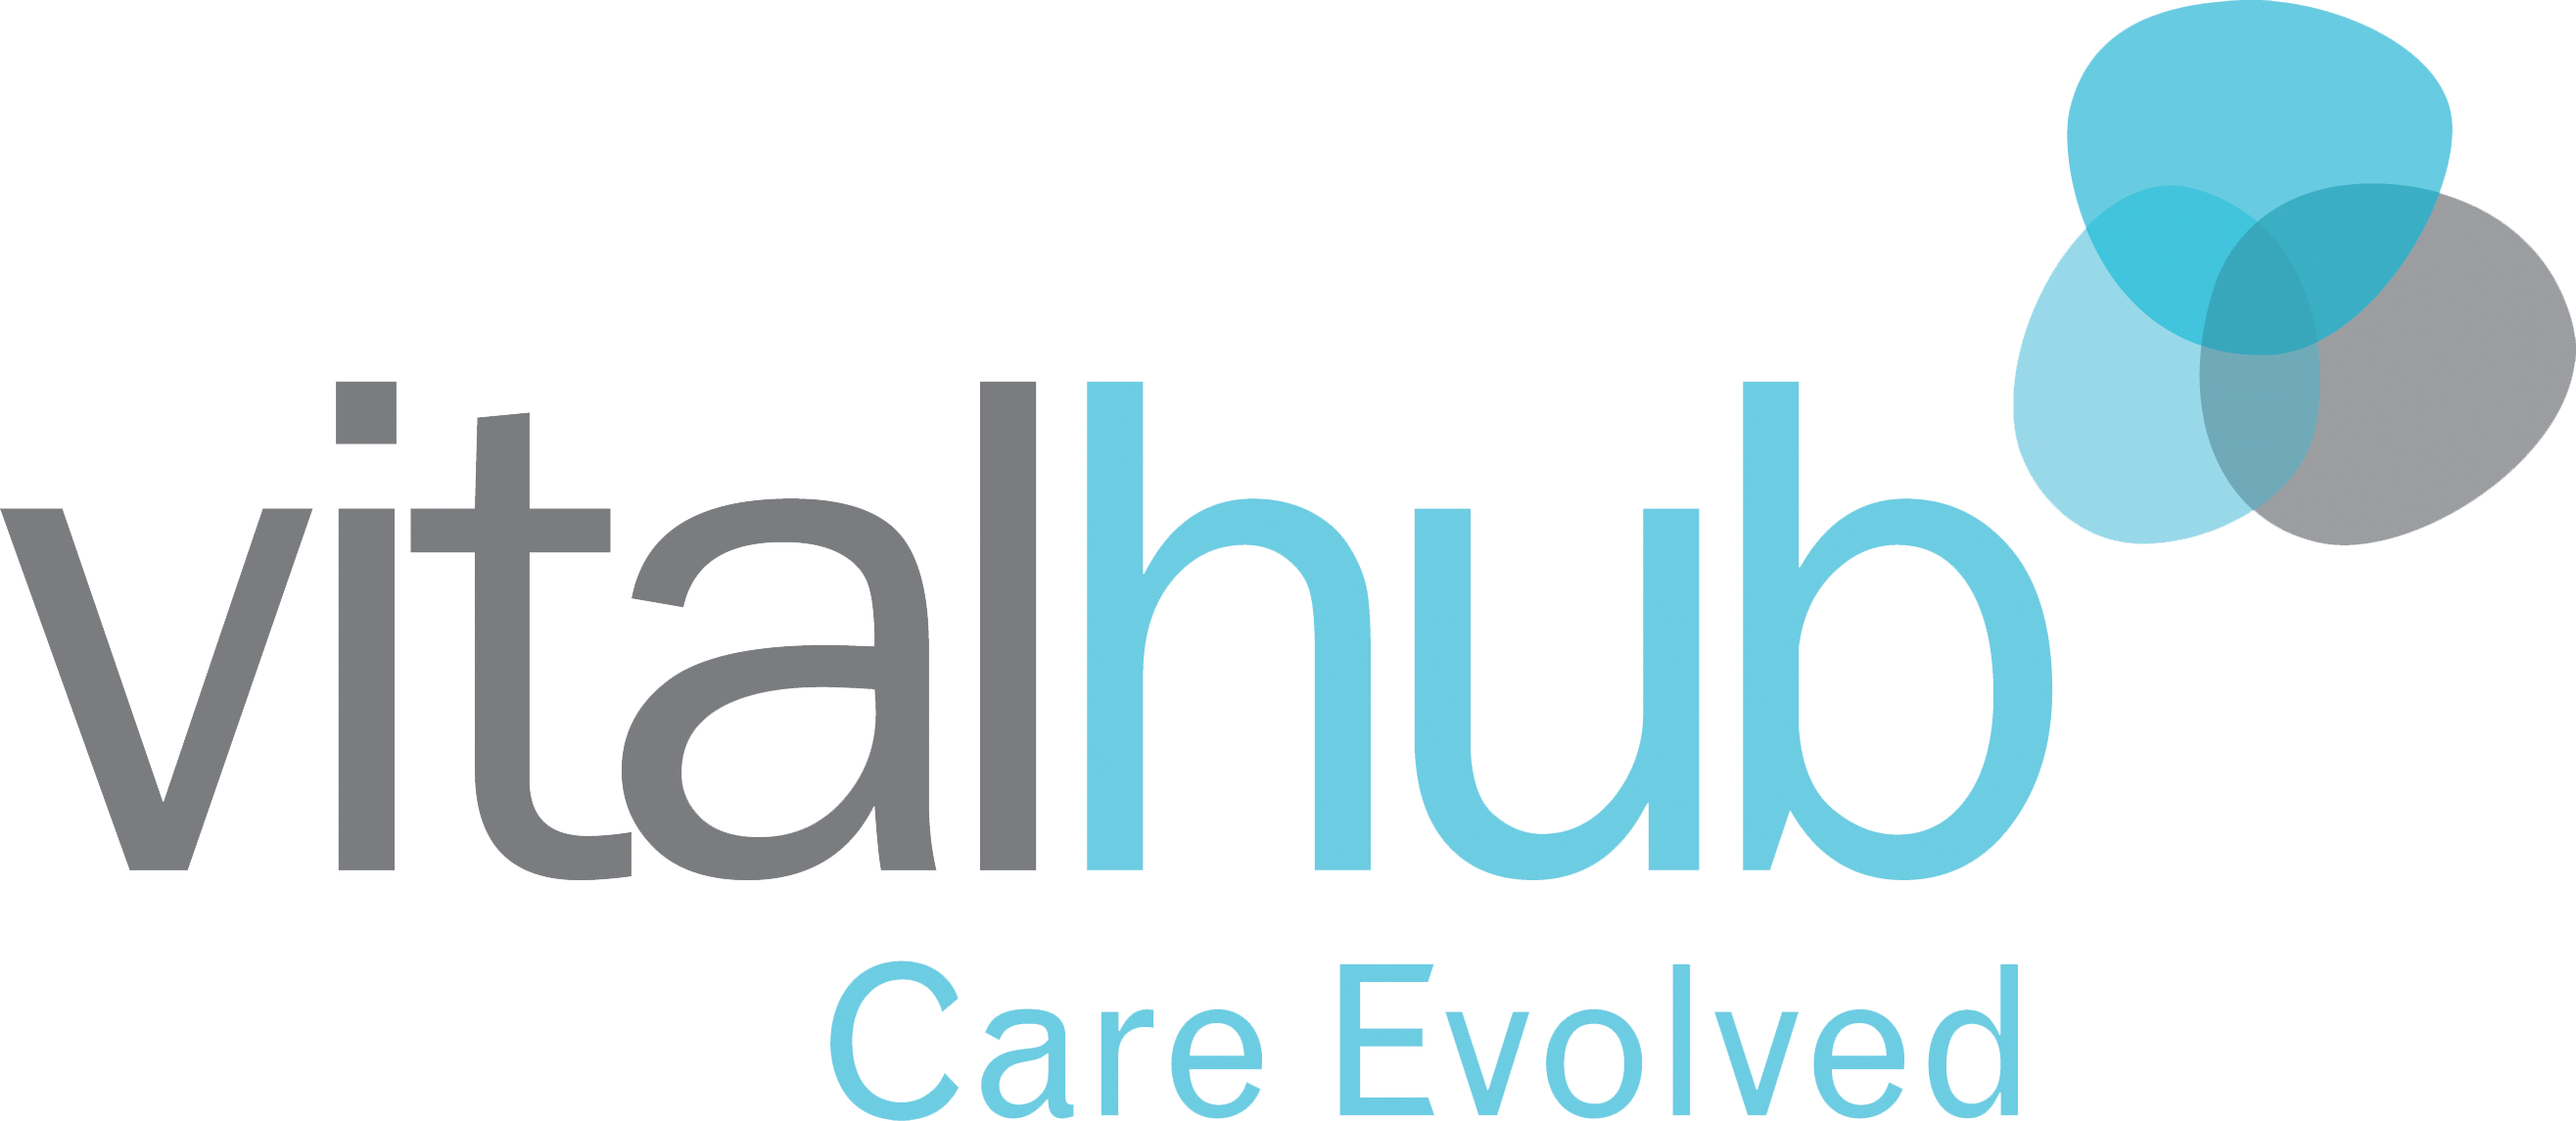 VitalHub Announces Licensing of Digital Outpatient Flow Management Solution via Australian Partner Device Technologies to Royal Victorian Eye and Ear Hospital in Melbourne